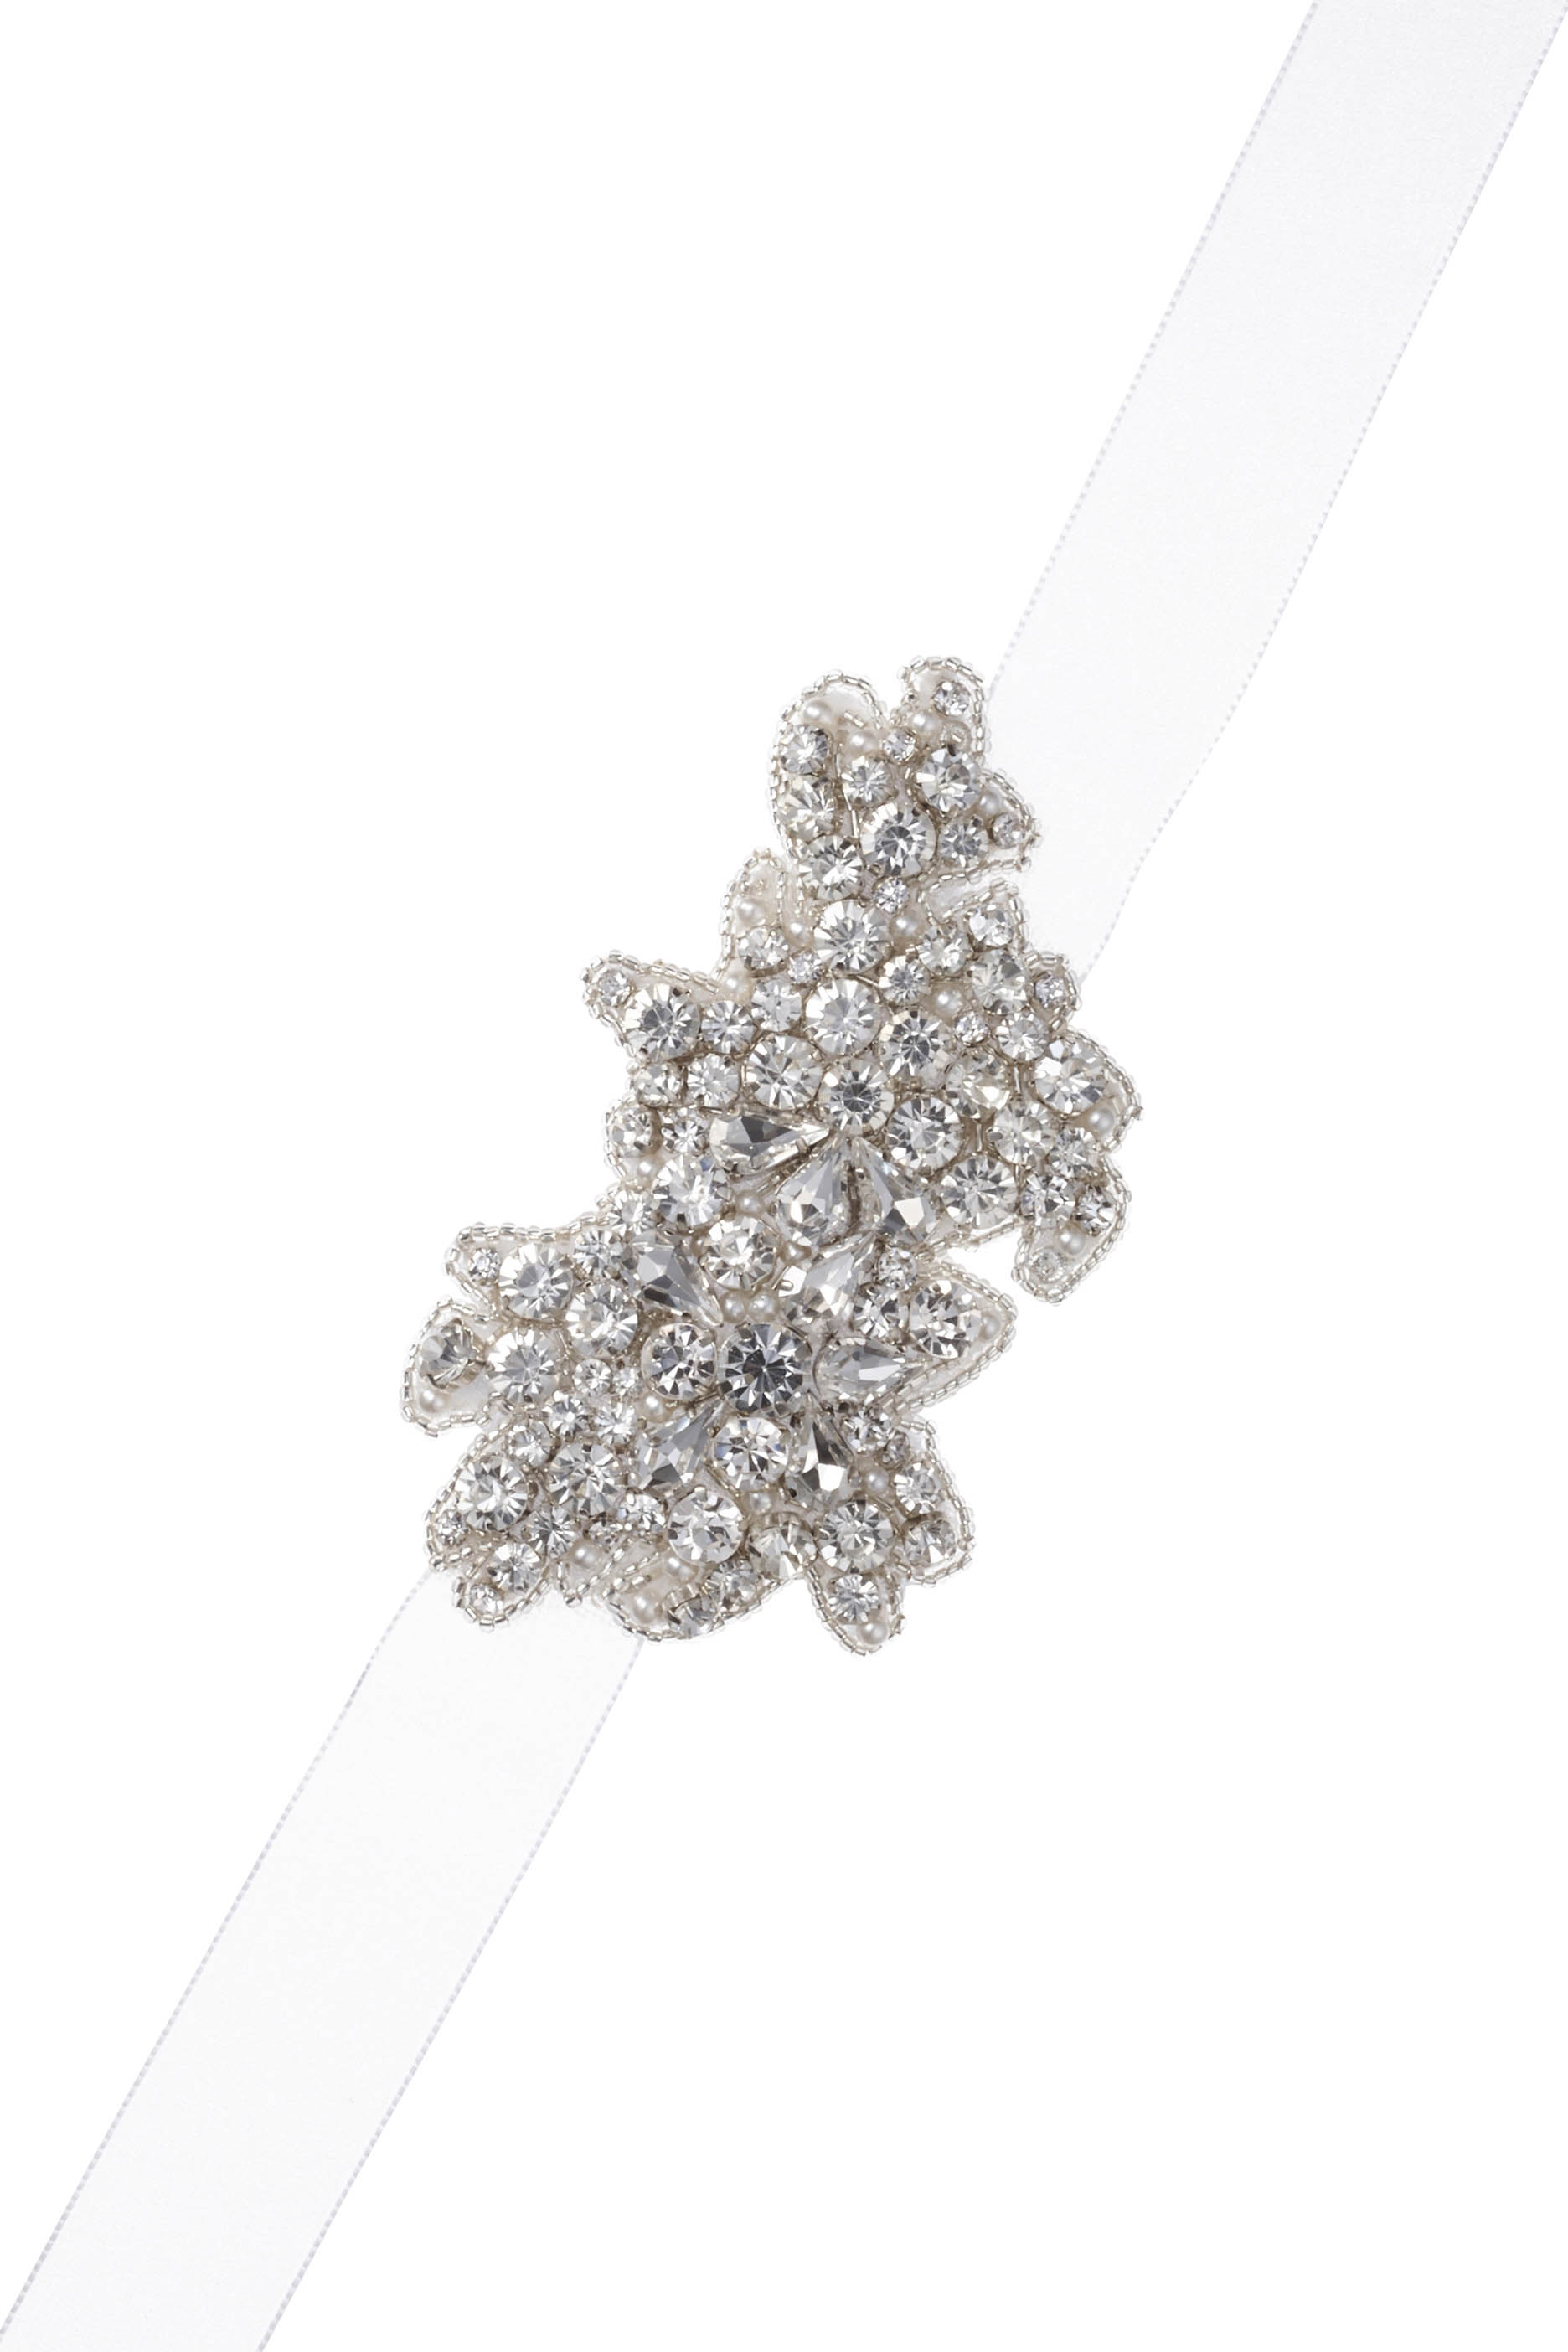 [RENTAL][JB Bracelet 480B]by JULIEBRIDAL(参考価格¥16,800)